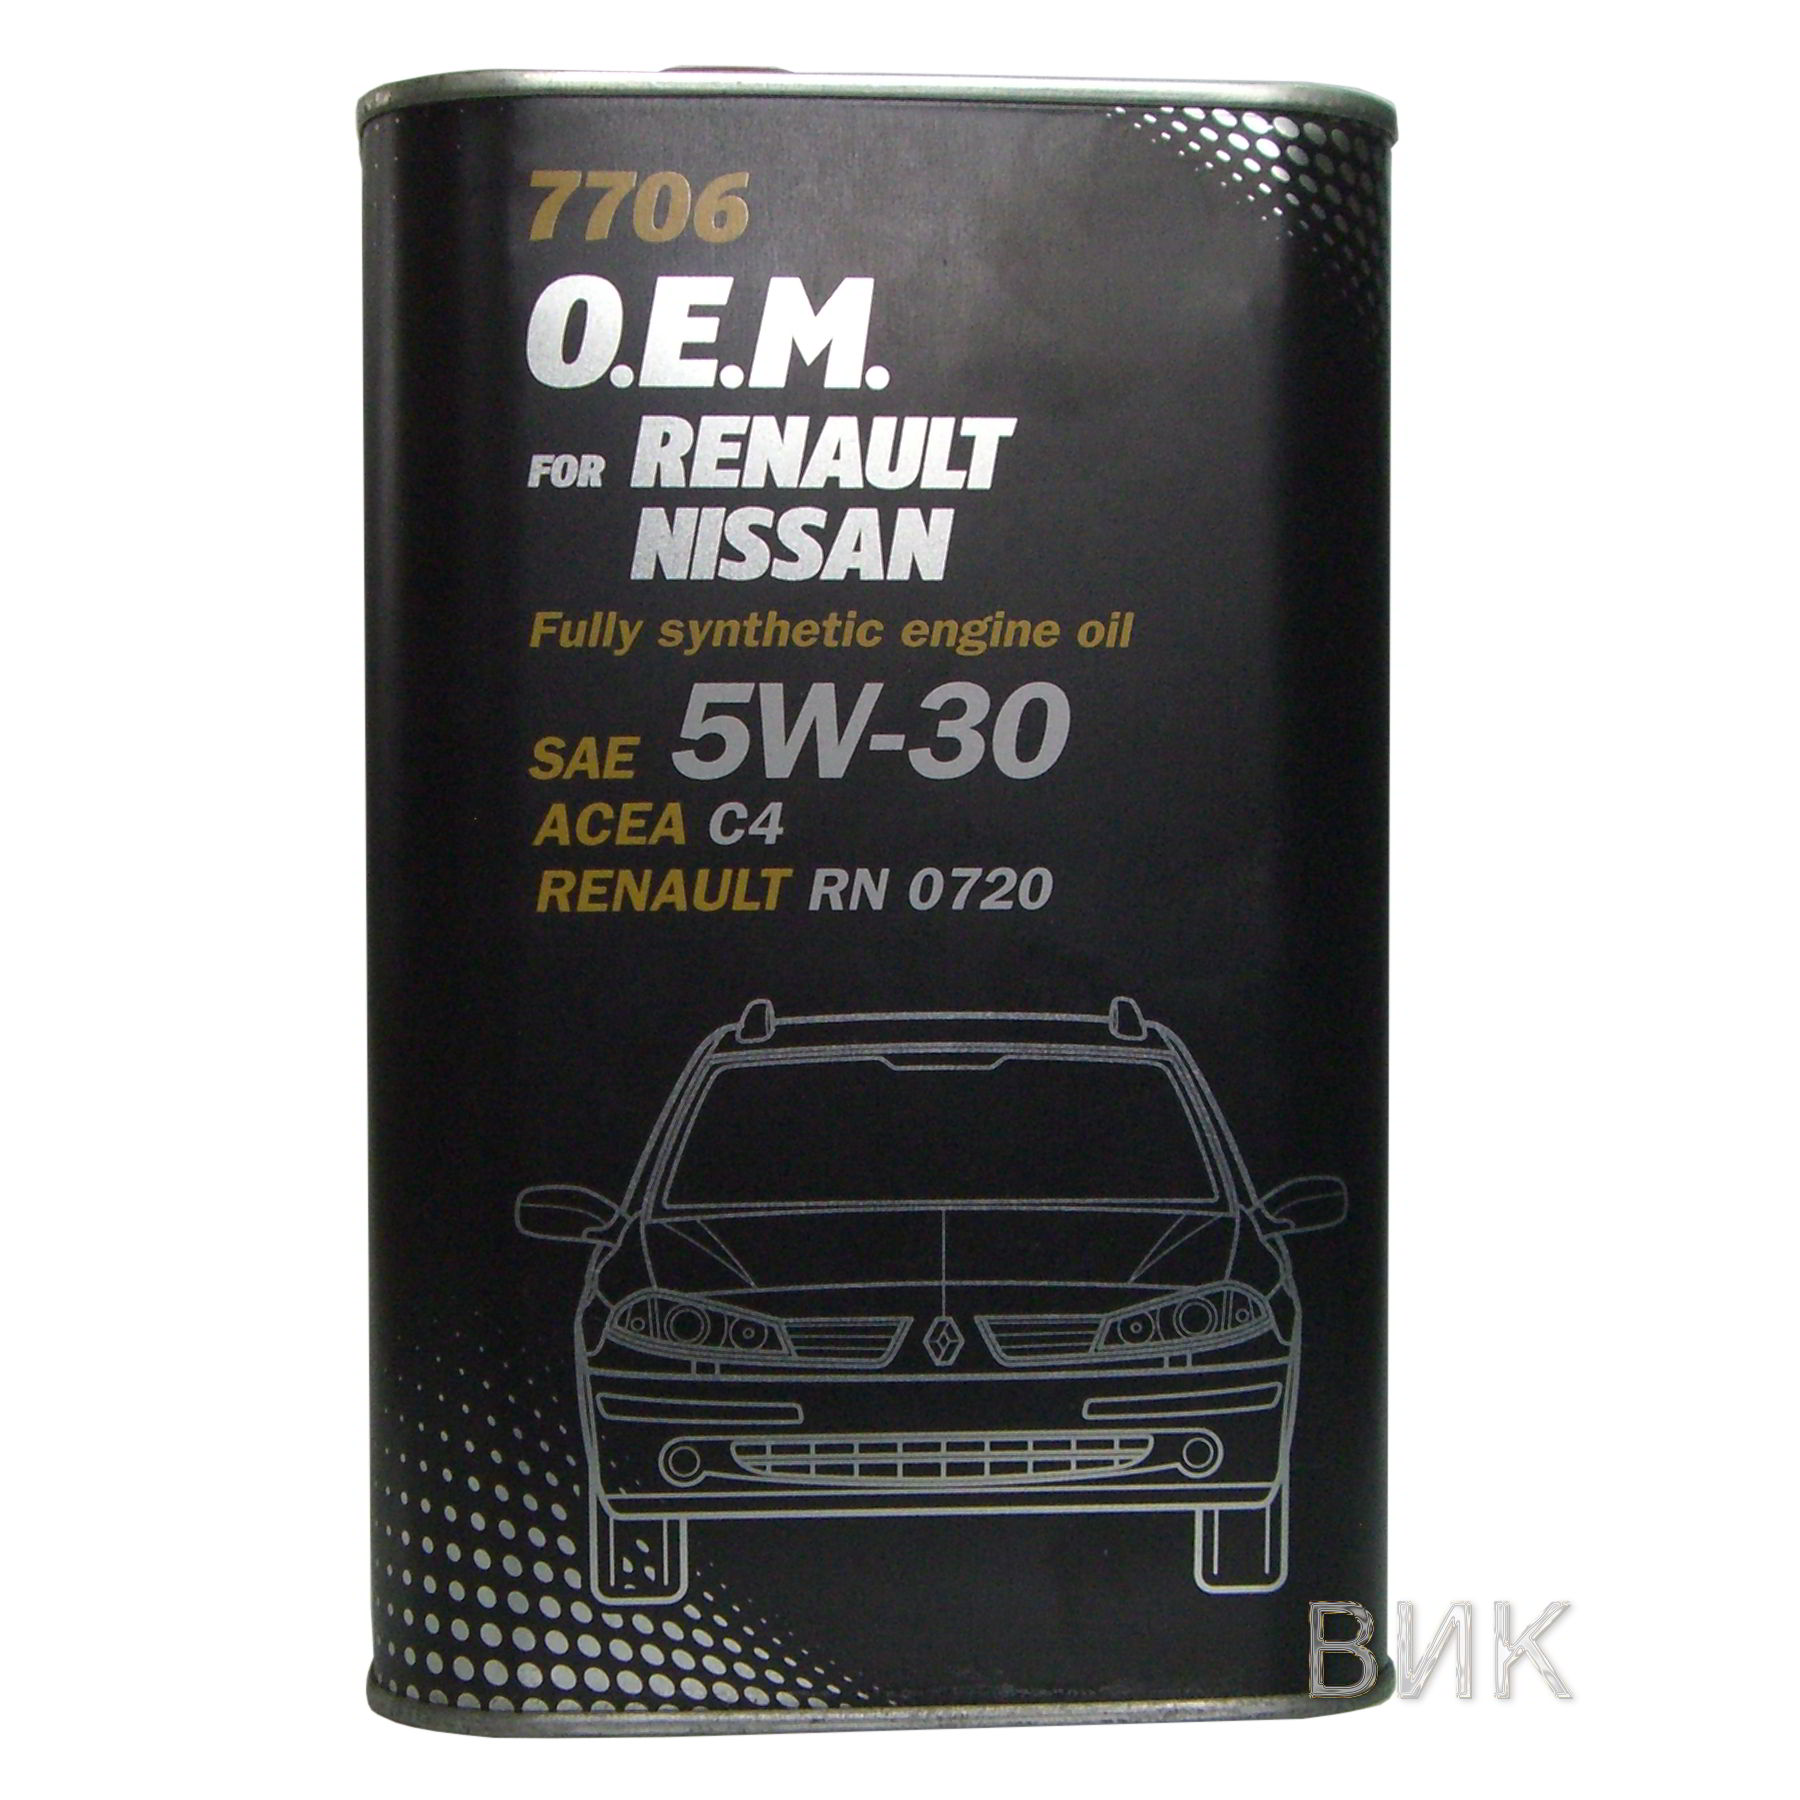 Моторное масло O.E.M. 7706 for Renault Nissan 5W-30 1л metal